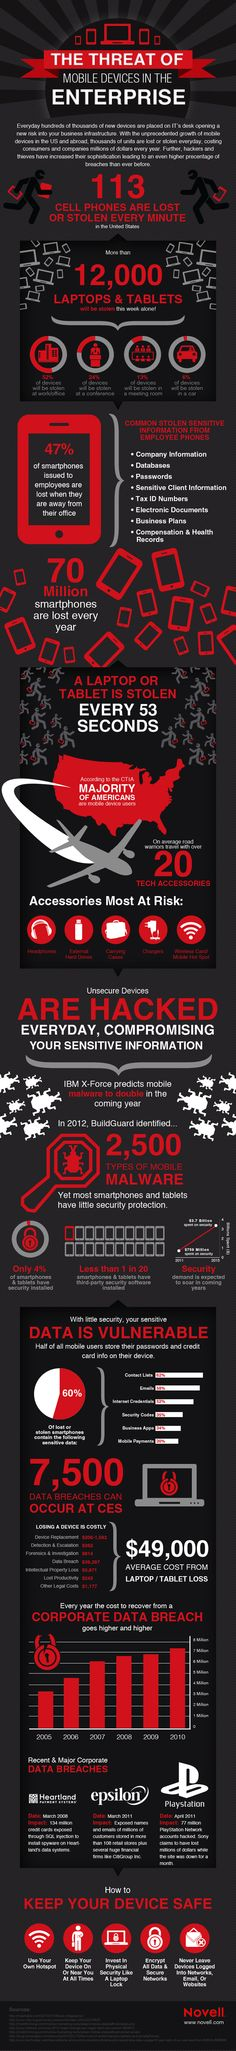 Protect your enterprise from mobile intruders #infographic